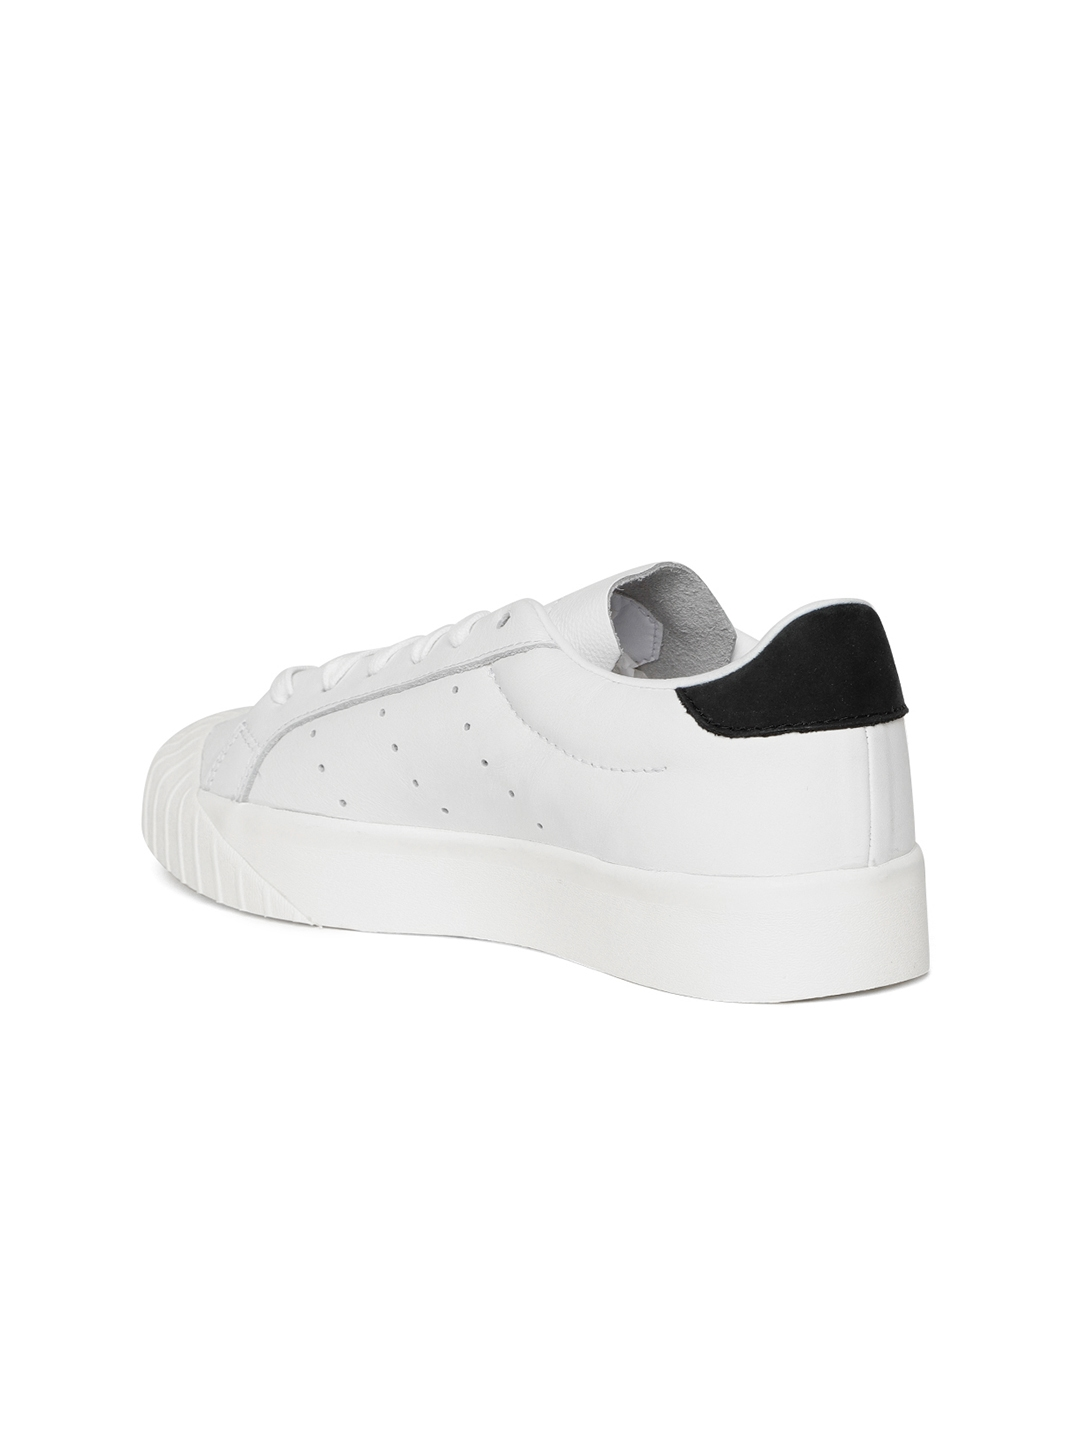 90fb4bc83818 Buy Adidas Originals Women White EVERYN Leather Sneakers - Casual ...